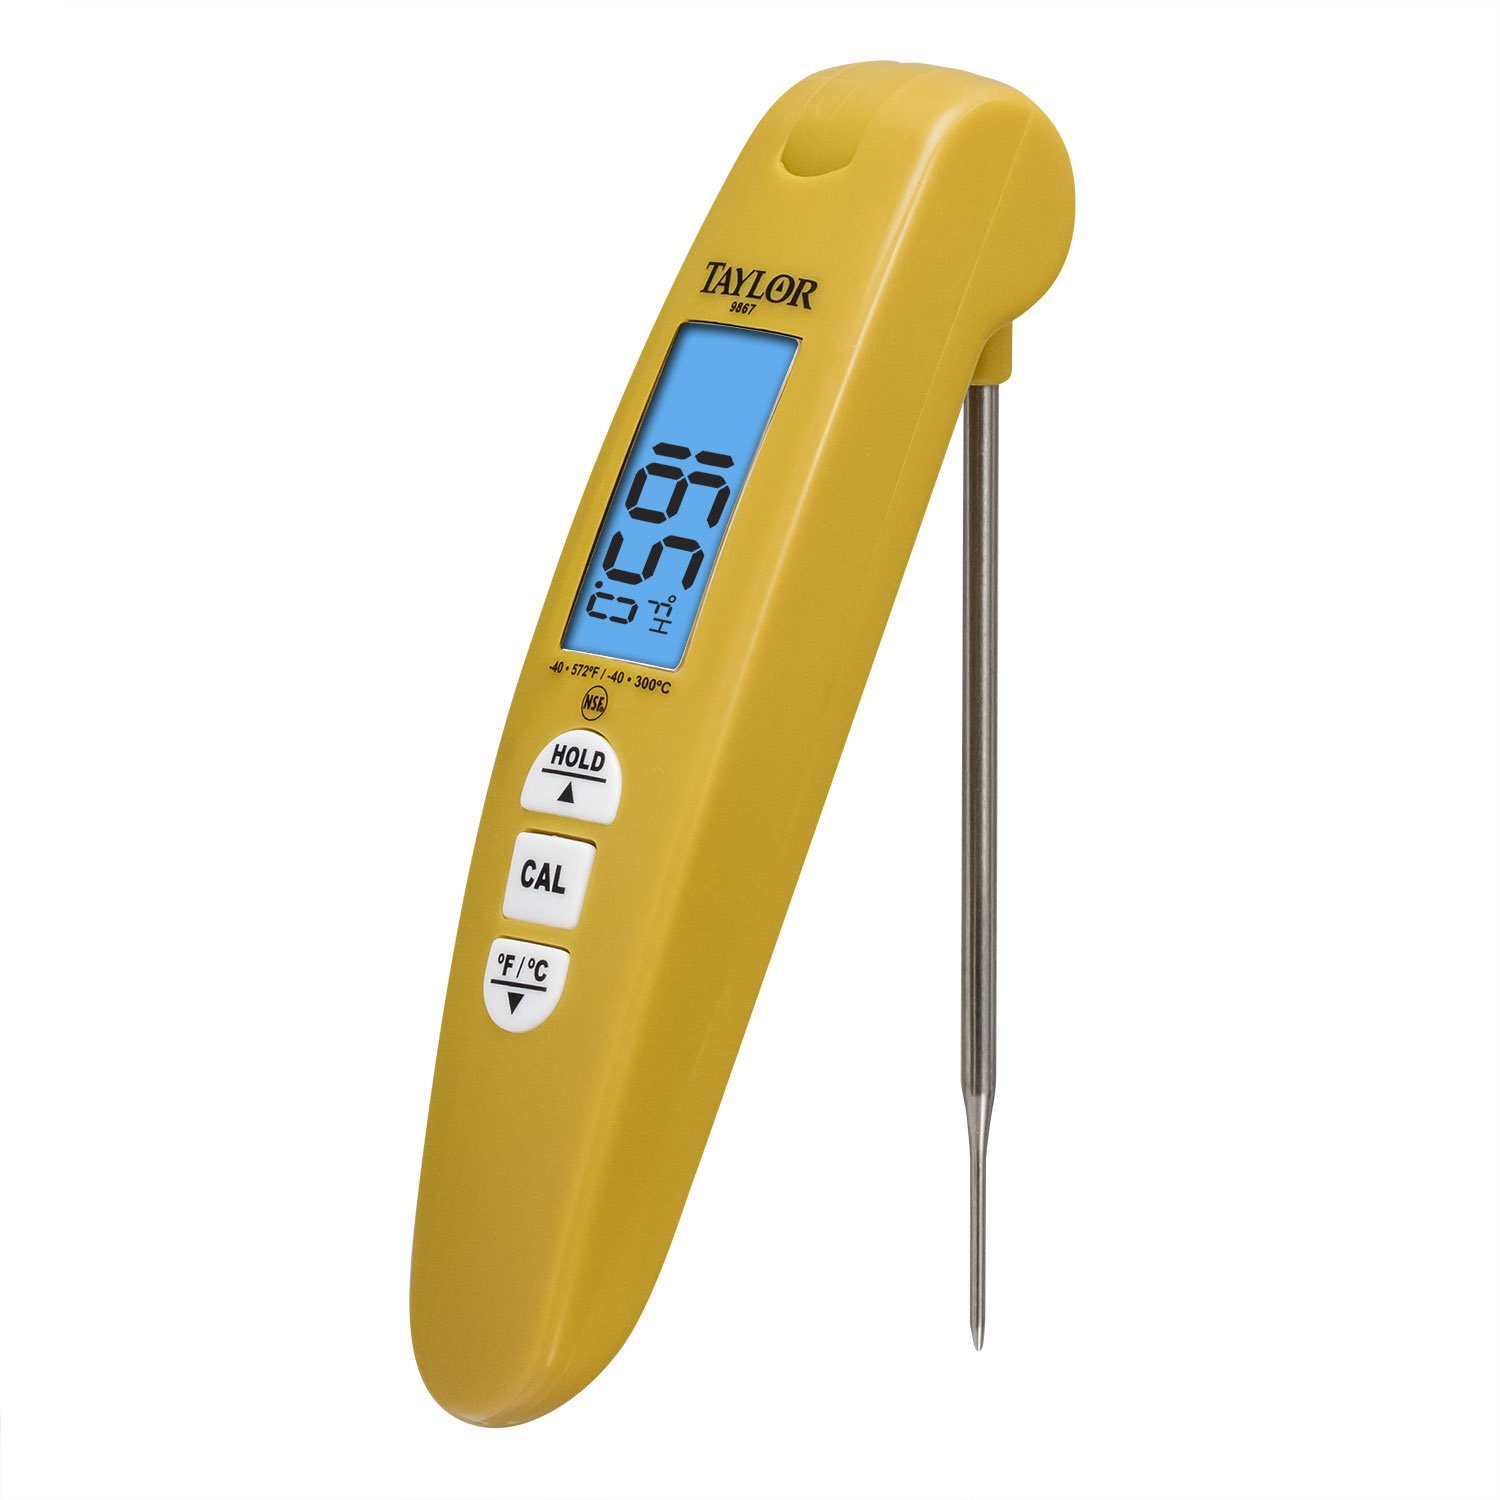 Taylor Precision Products Digital Turbo Read Thermocouple Thermometer with Folding Probe, Yellow